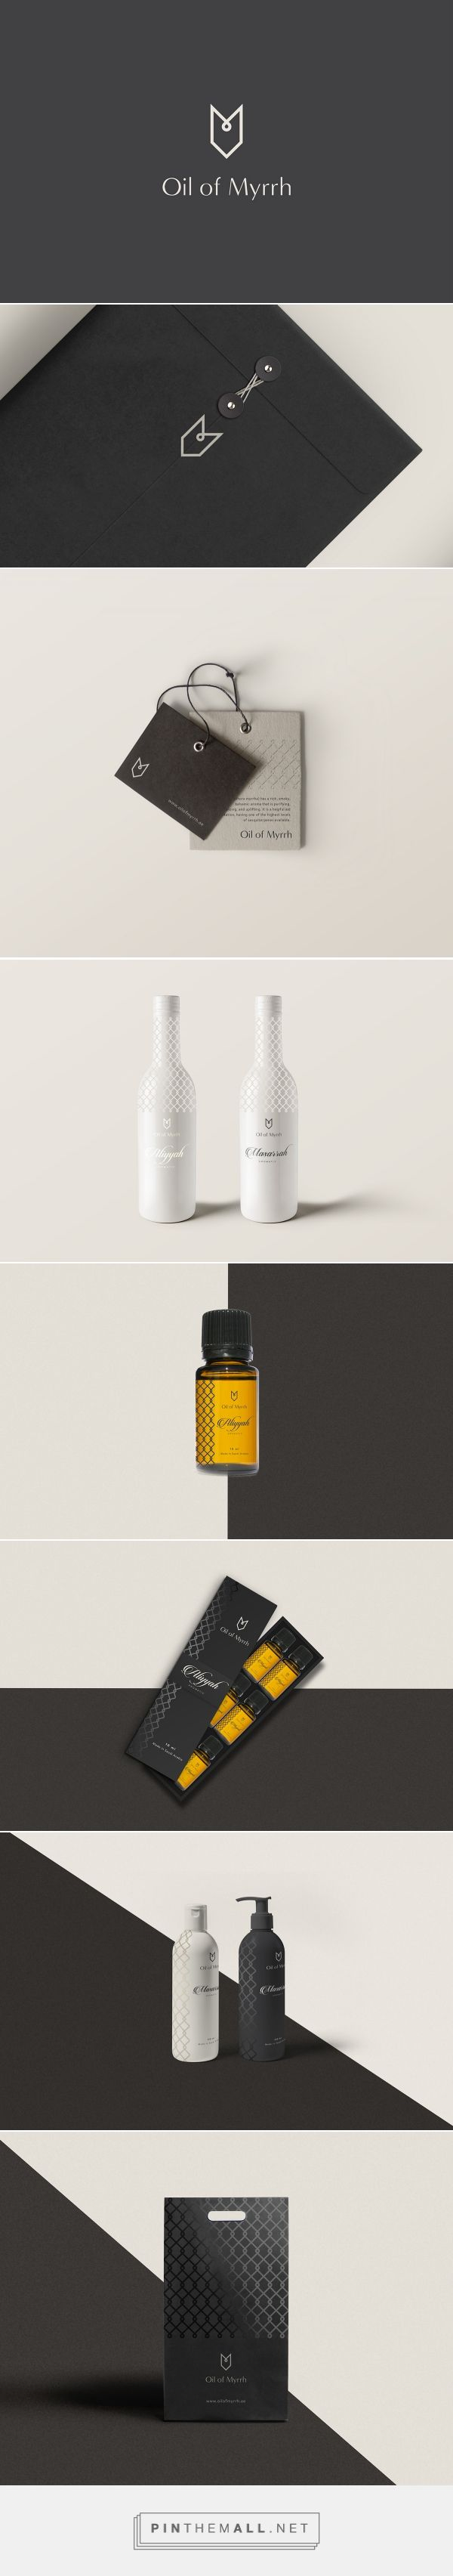 Oil of Myrrh packaging on Behance by Sebastian Bednarek curated by Packaging Diva PD. Myrrh oil's benefits attributed to its powerful antioxidant, antifungal, antiviral, anti-inflammatory, anti-parasitic, expectorant, and antispasmodic properties.